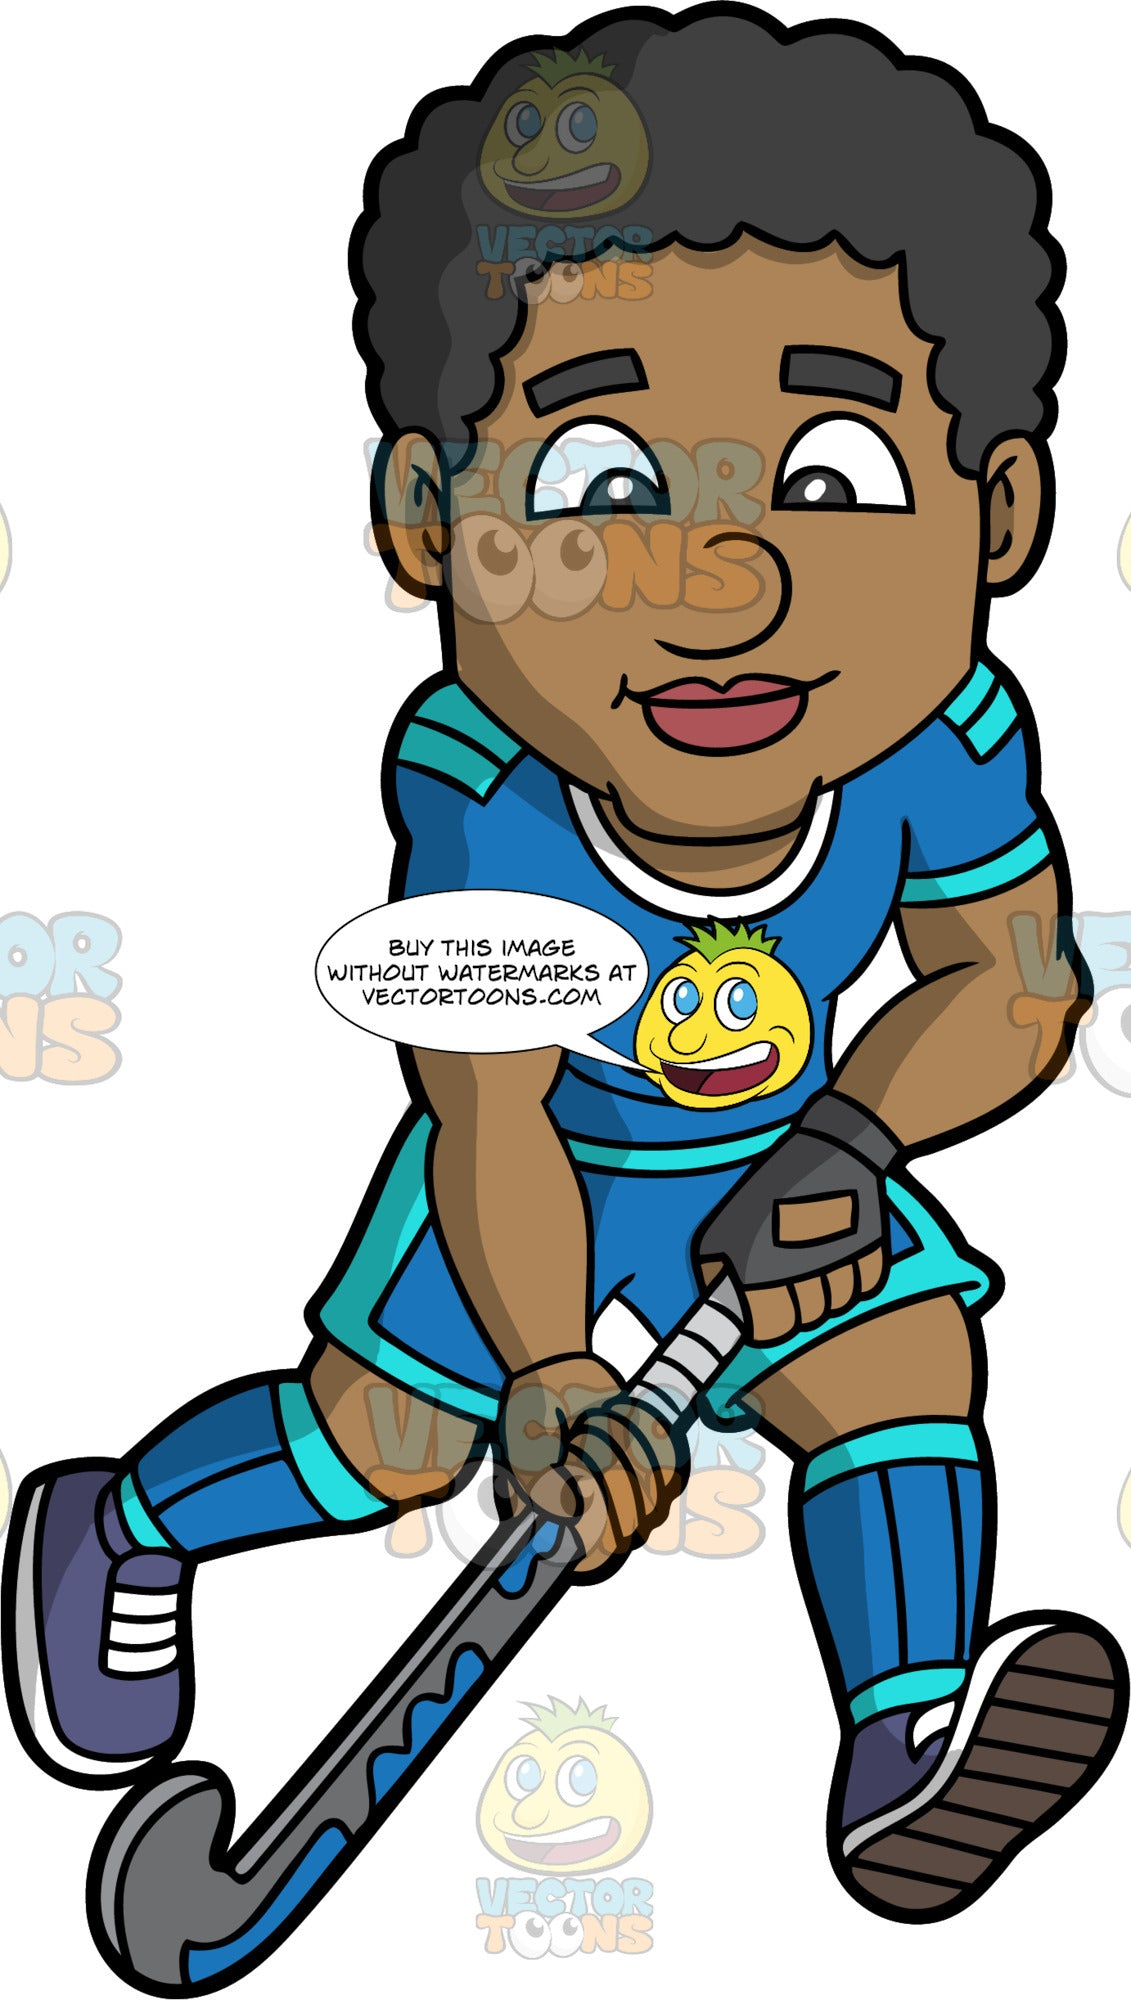 A black man enjoying a game of field hockey. A black man wearing blue shorts, a blue shirt, blue socks and dark blue shoes, holding a field hockey stick in his hands and running